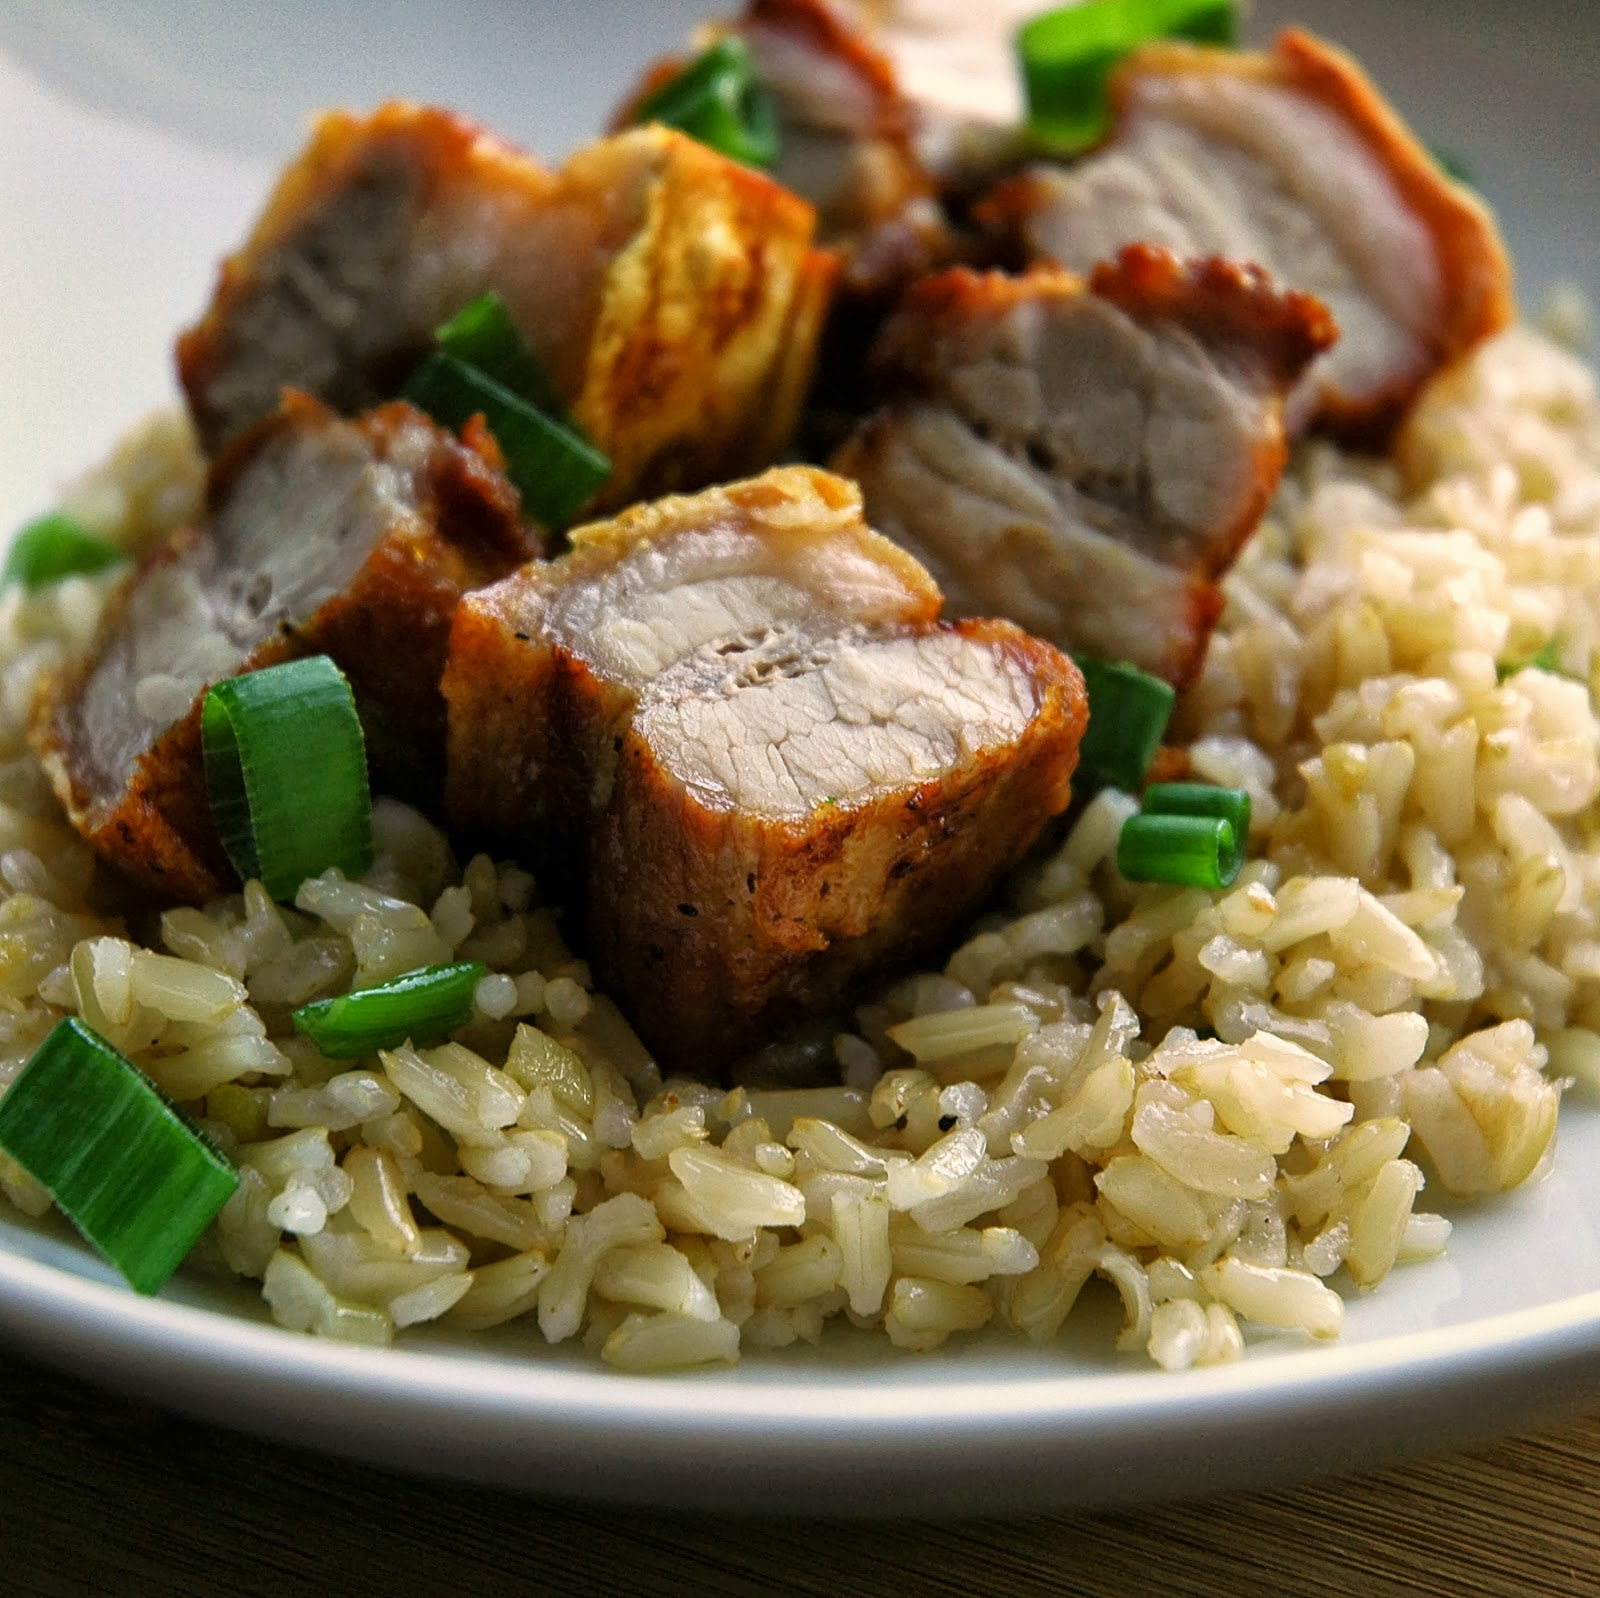 Cooking with mom crispy pork belly garlic fried rice simply for dipping we love to serve the pork with sweet chili sauce or mang tomas the traditional condiment for lechon every crispy salty garlic y bite is so ccuart Choice Image